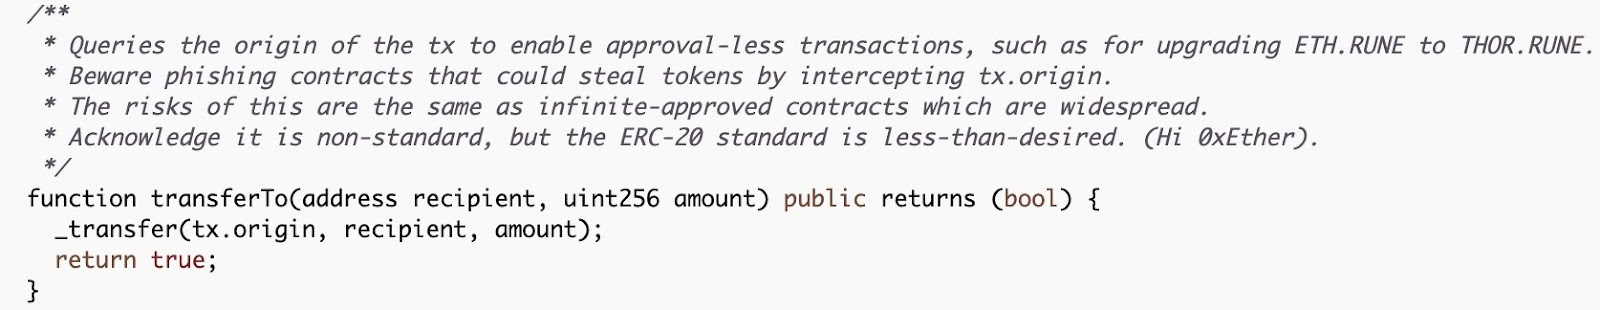 THORChain Code Documentation Notes The Issue